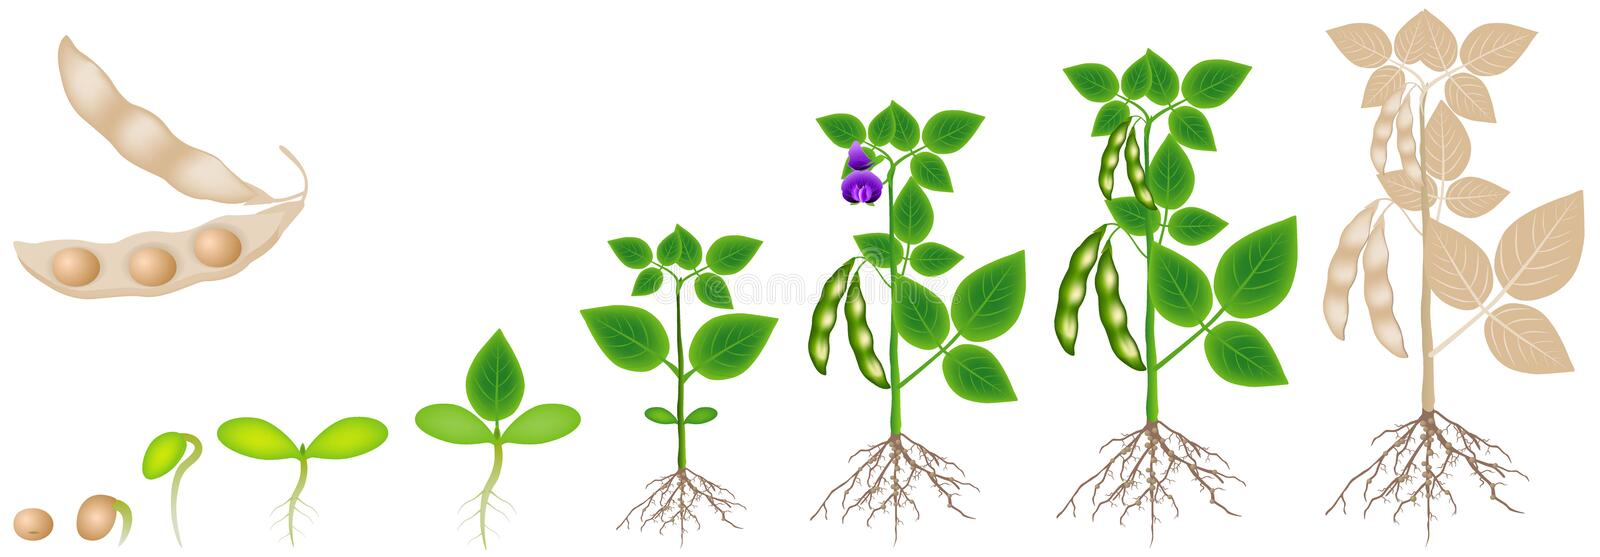 Cycle of growth of soybean plant isolated on white background. stock photo